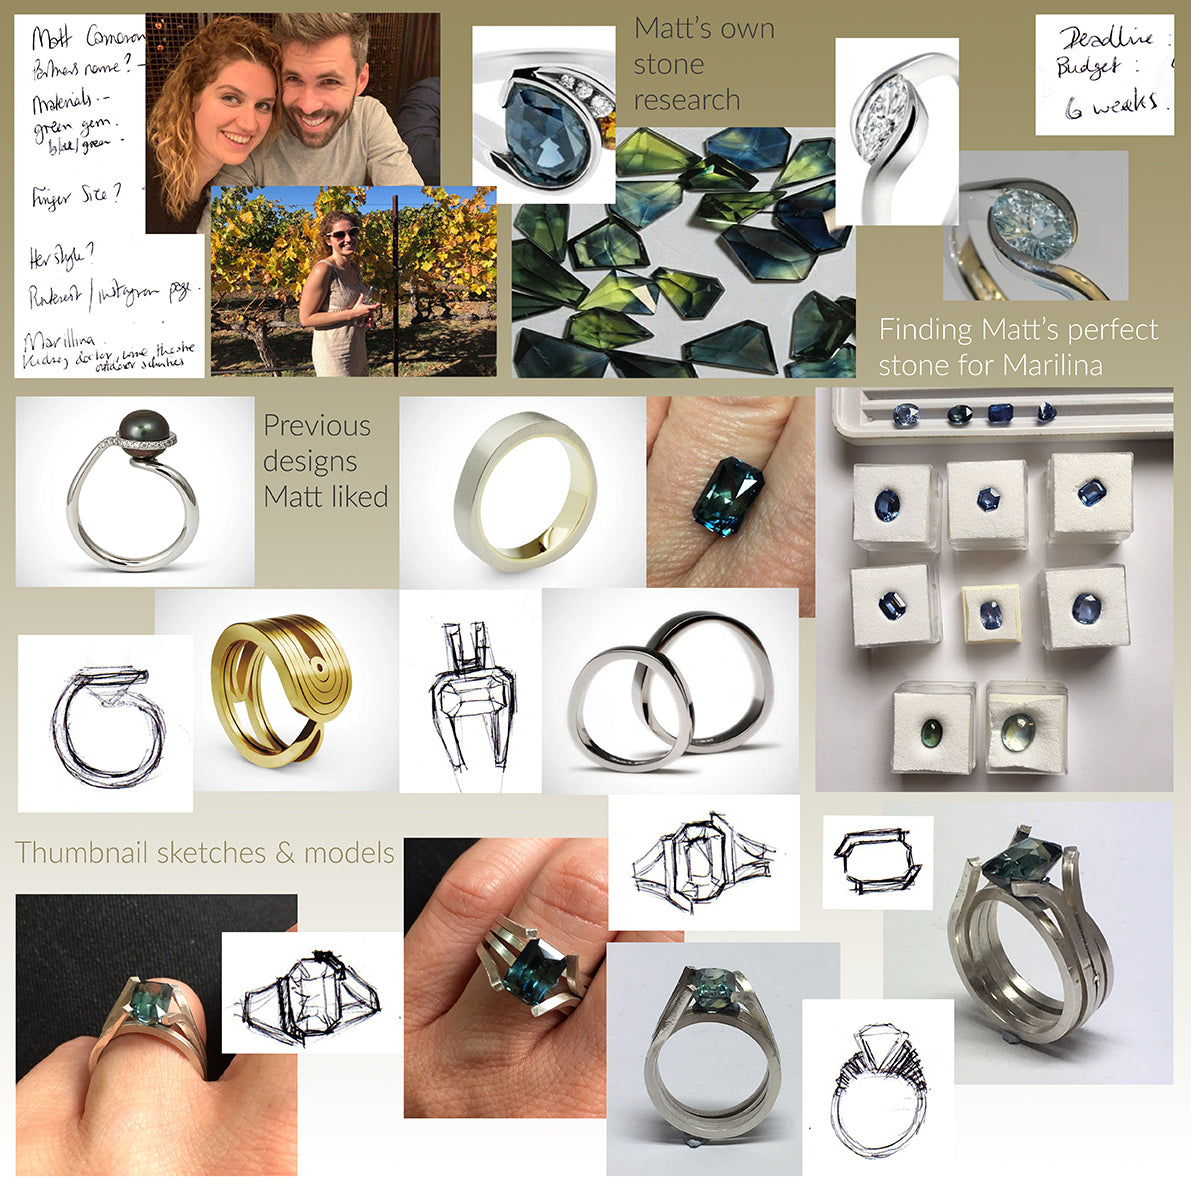 Matts bespoke engagement ring design inspiration board